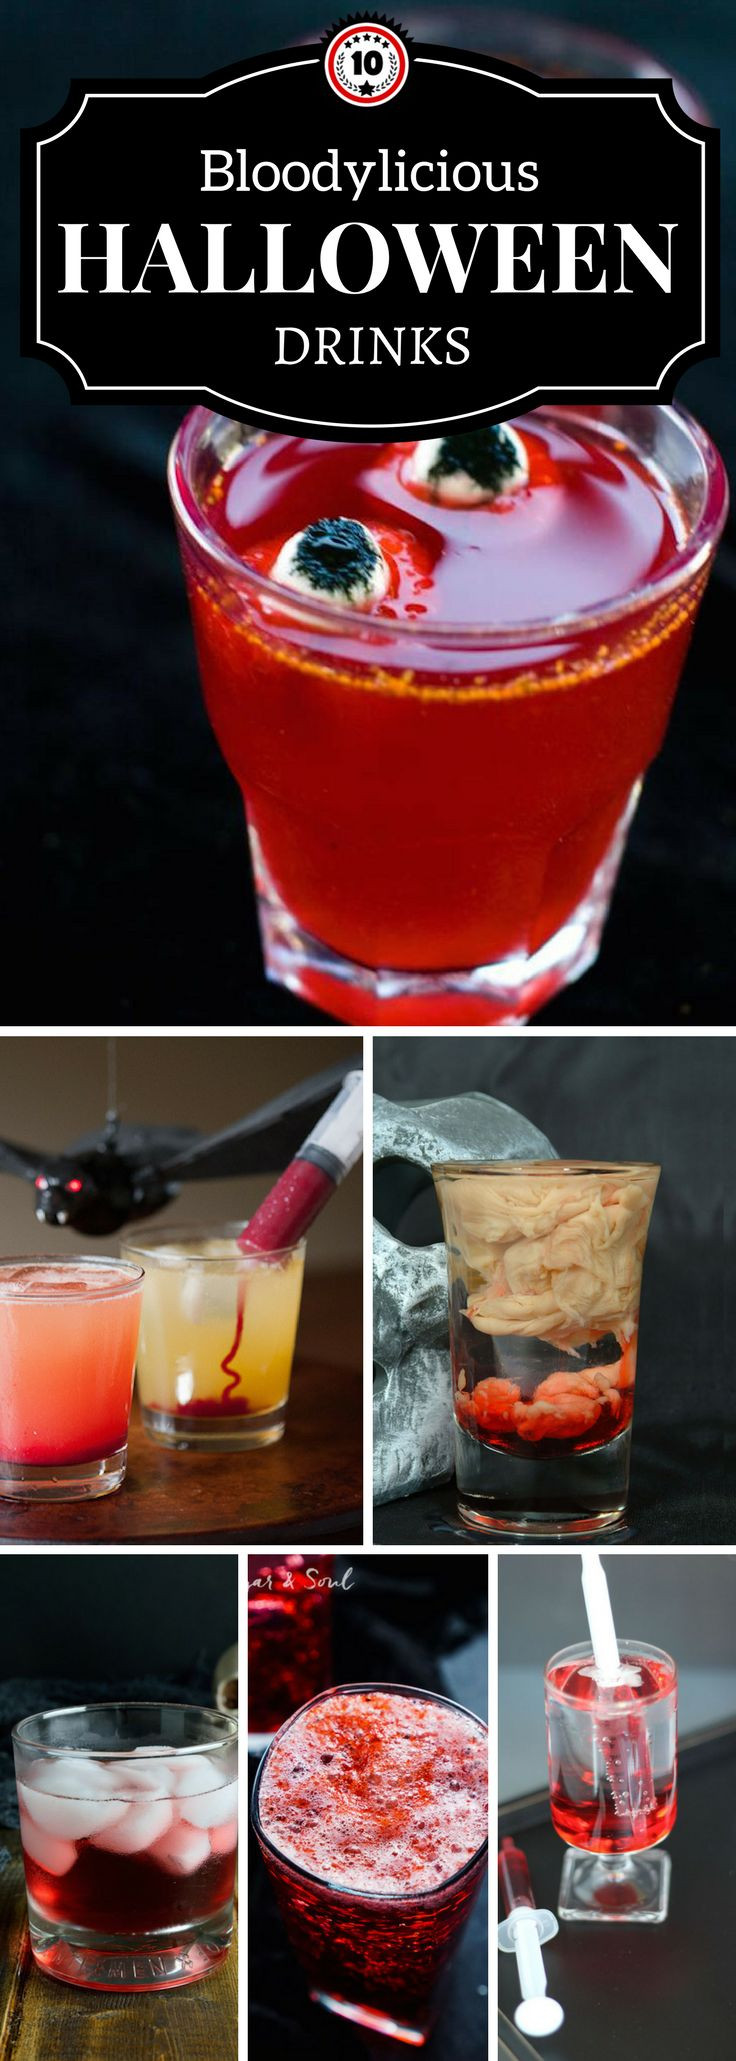 Halloween Drinks Recipes  Best 25 Halloween drinks ideas on Pinterest